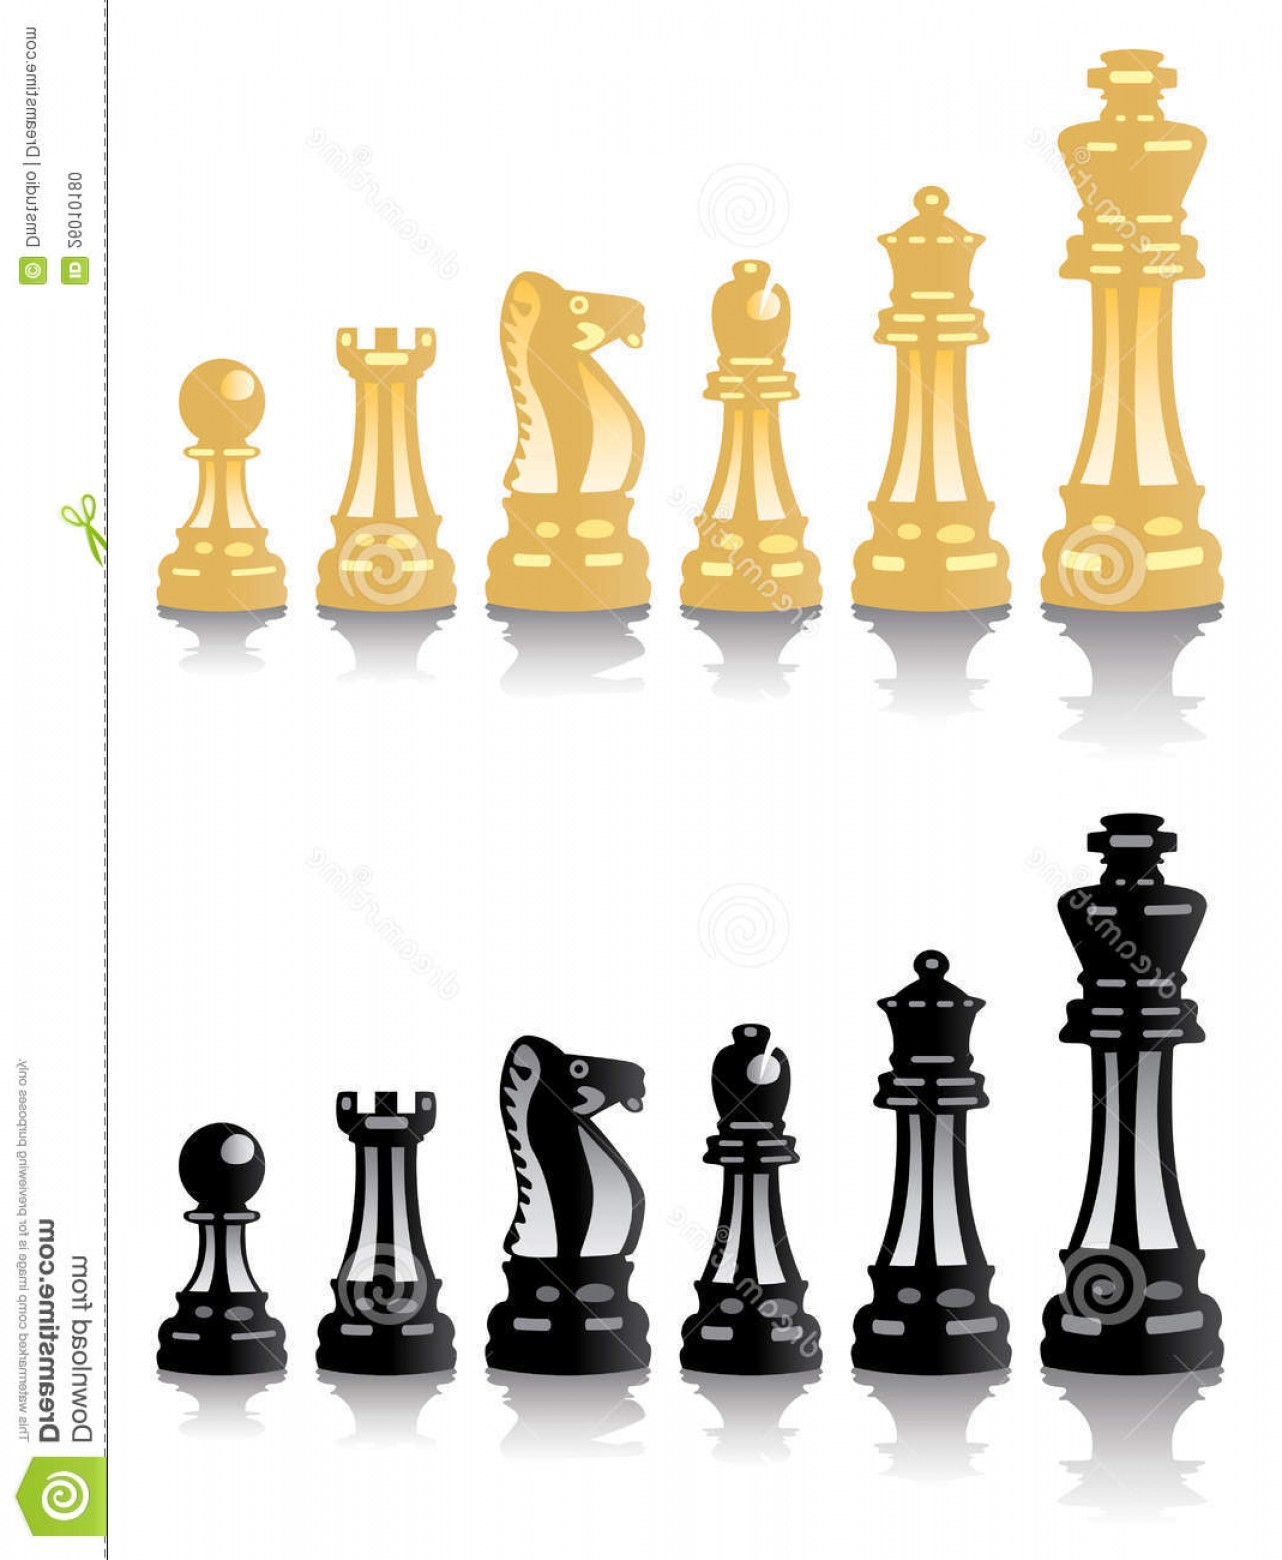 Vector Chess Board: Stock Photo Vector Chess Pieces Image